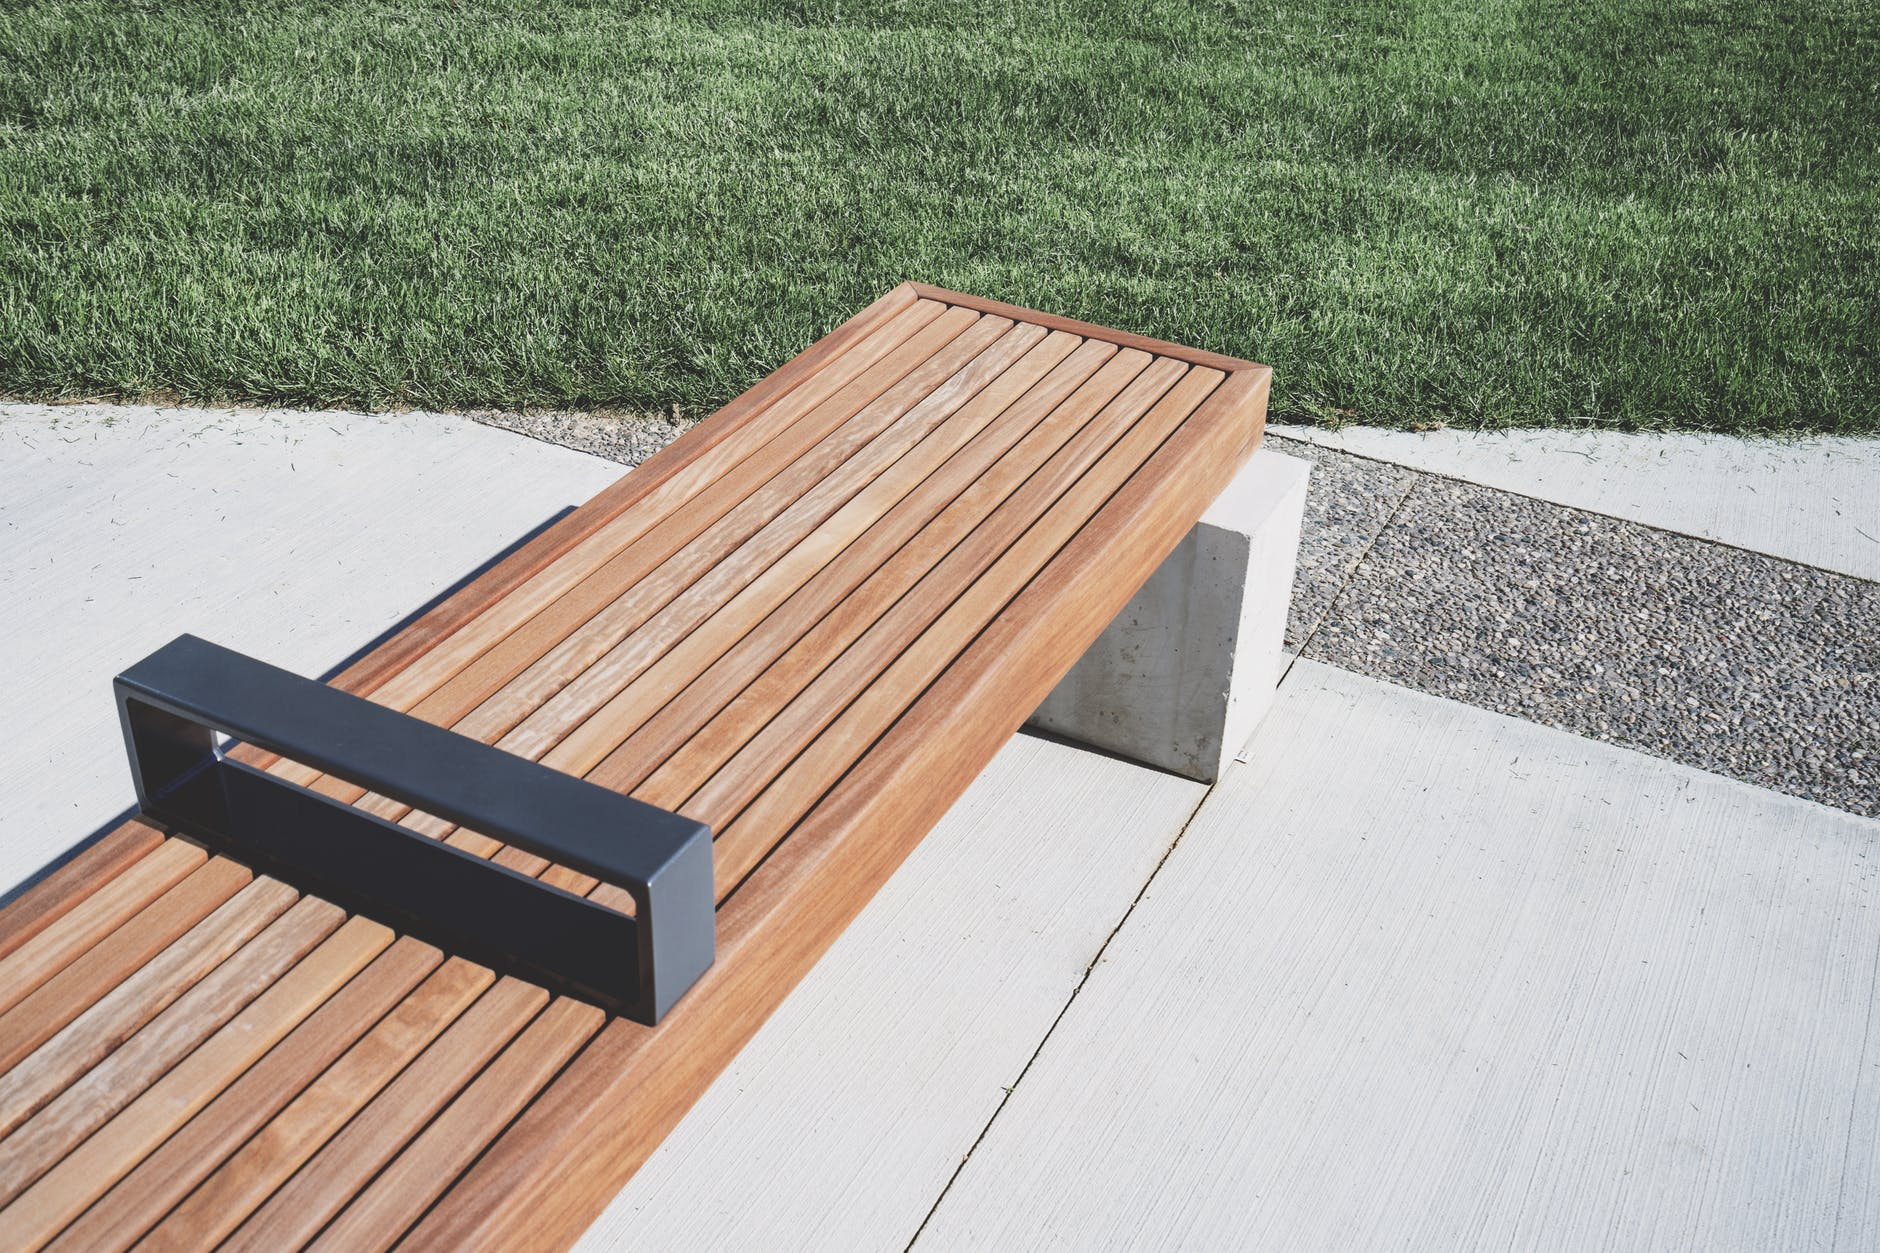 Astonishing Modern Outdoor Benches Our Favorites At Amazon In 2019 Beatyapartments Chair Design Images Beatyapartmentscom